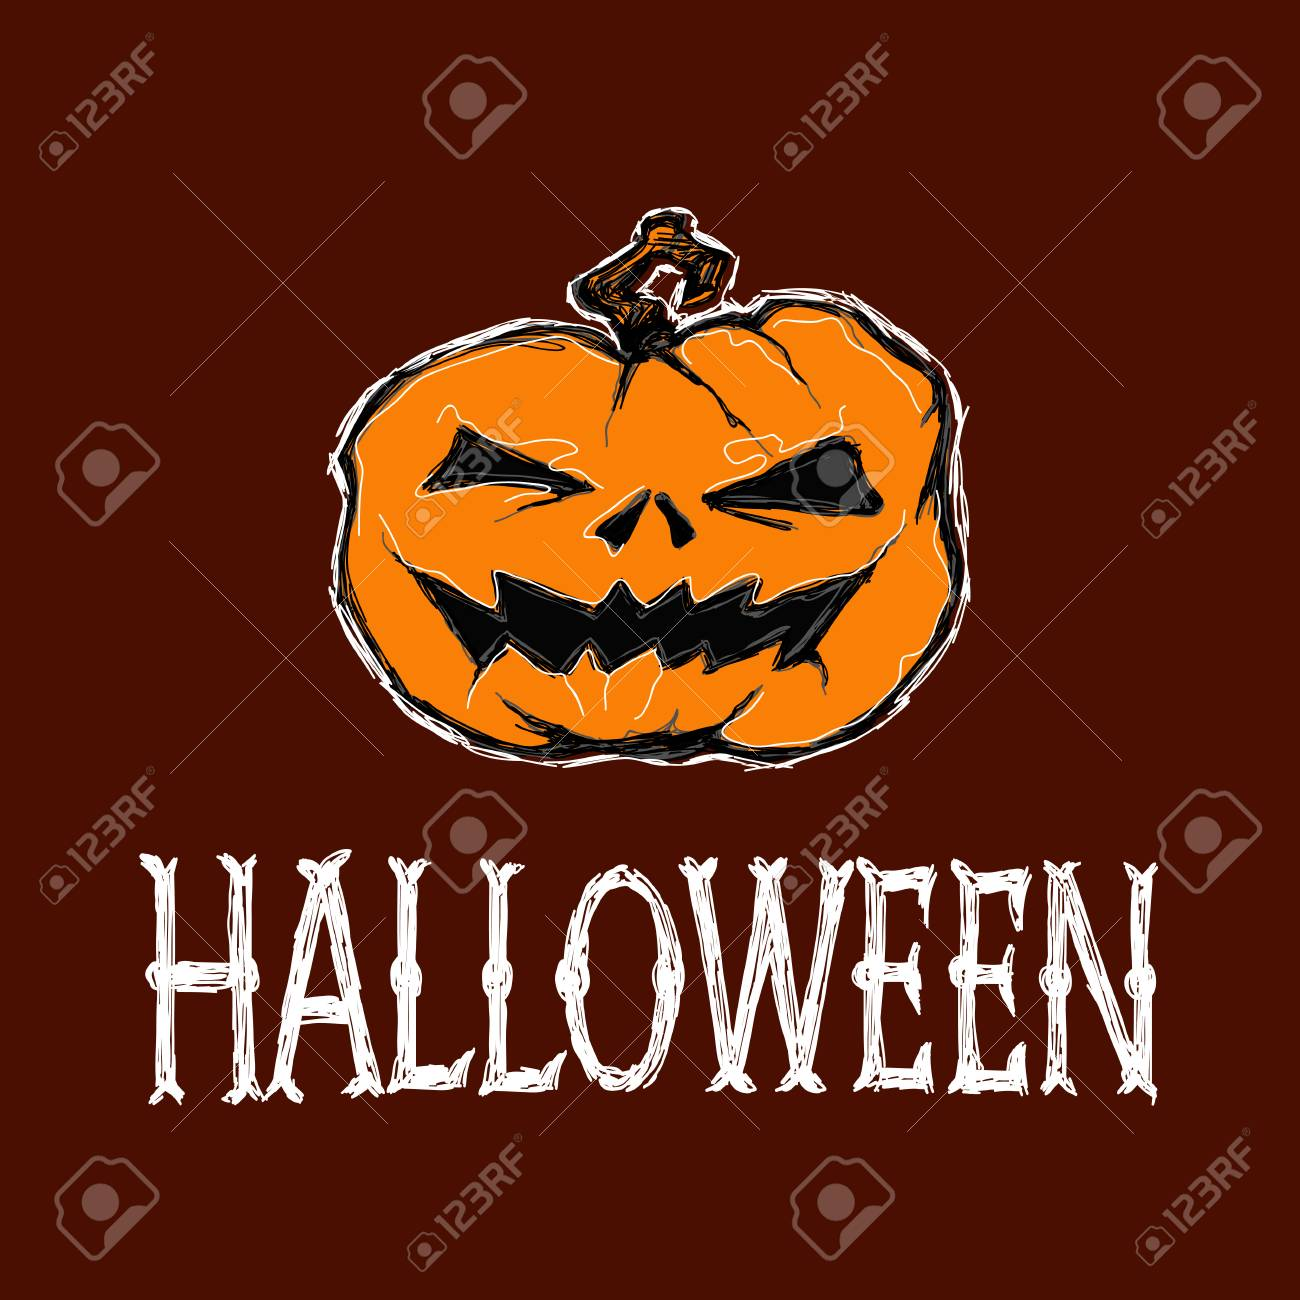 Halloween Vector Illustration Creepy Pumpkin And Letters Drawing